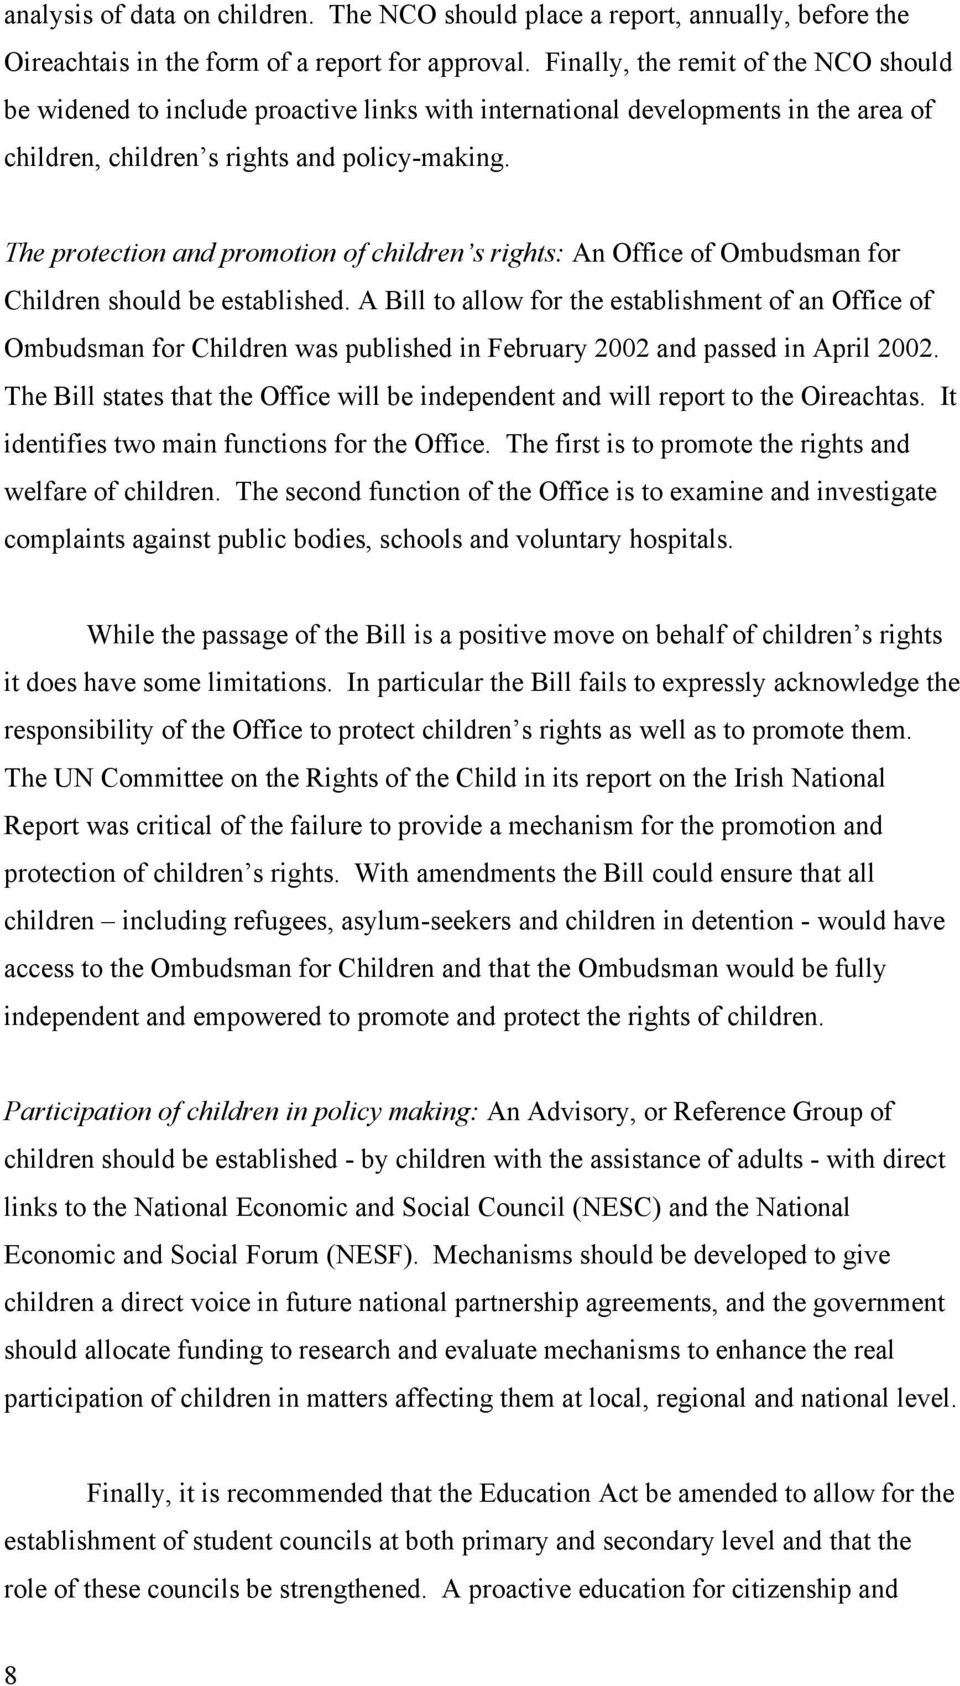 The protection and promotion of children s rights: An Office of Ombudsman for Children should be established.